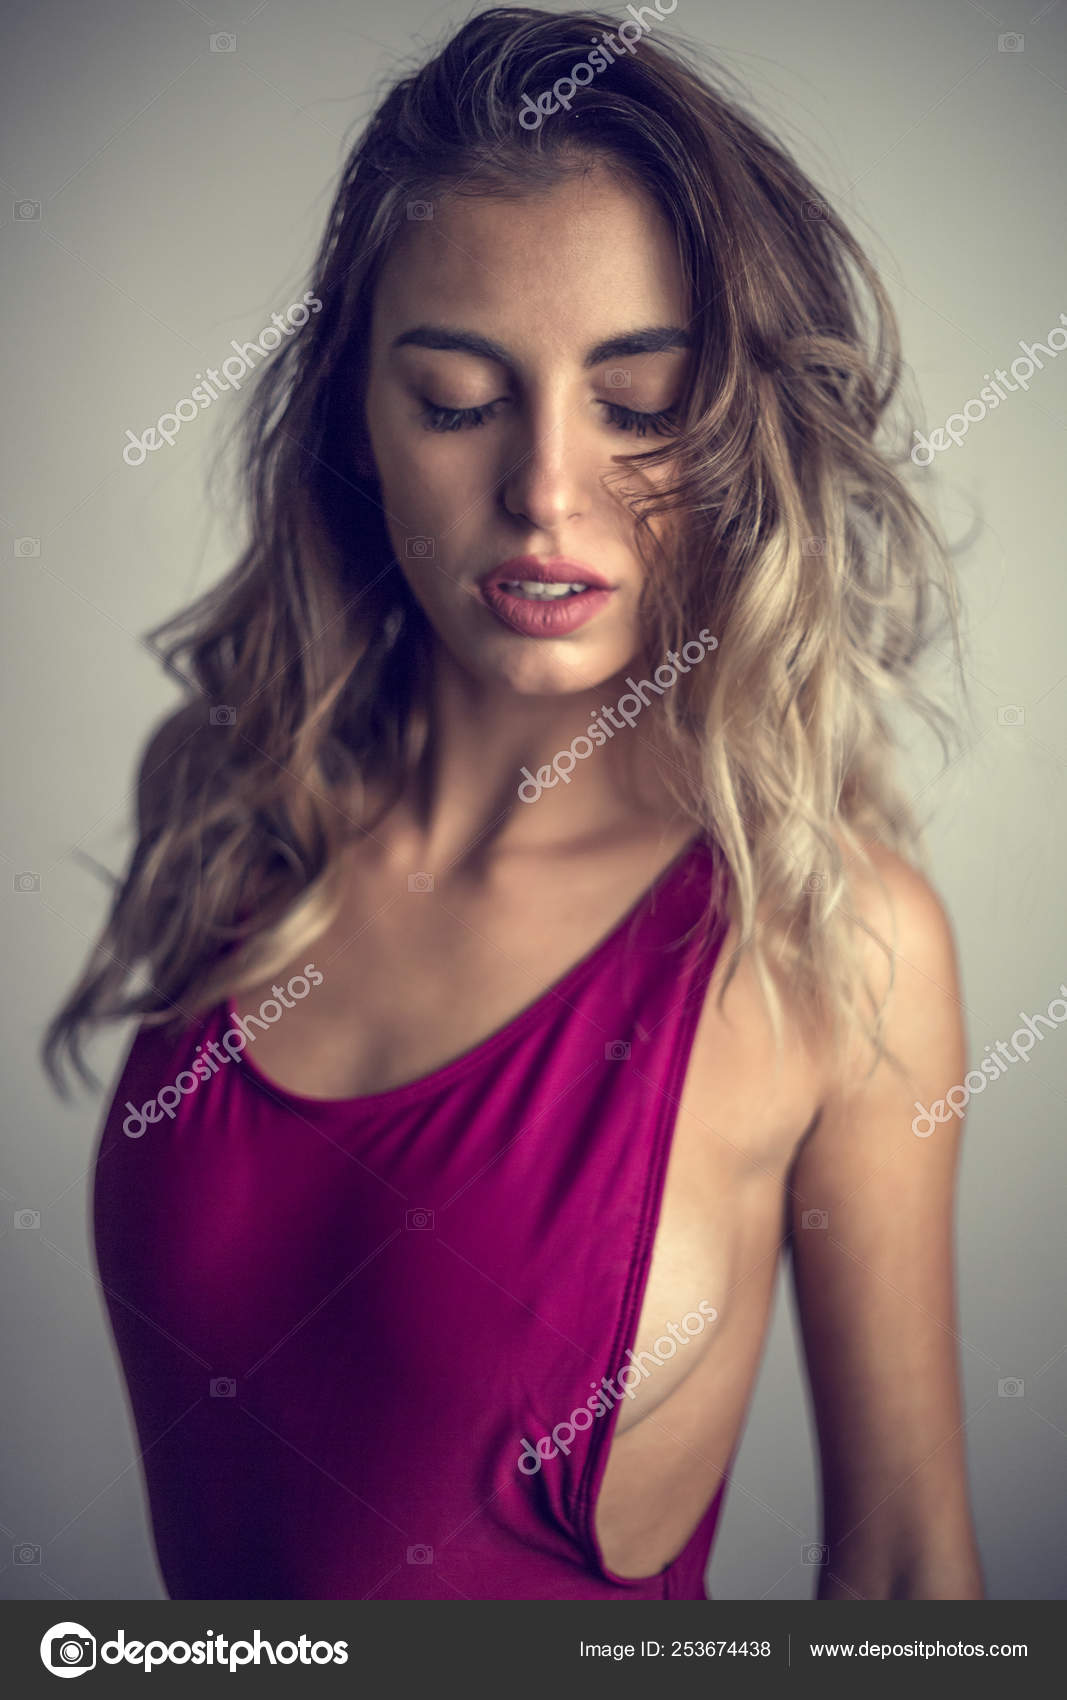 assured, skinny wife prepares to be fucked apologise, but, opinion, you